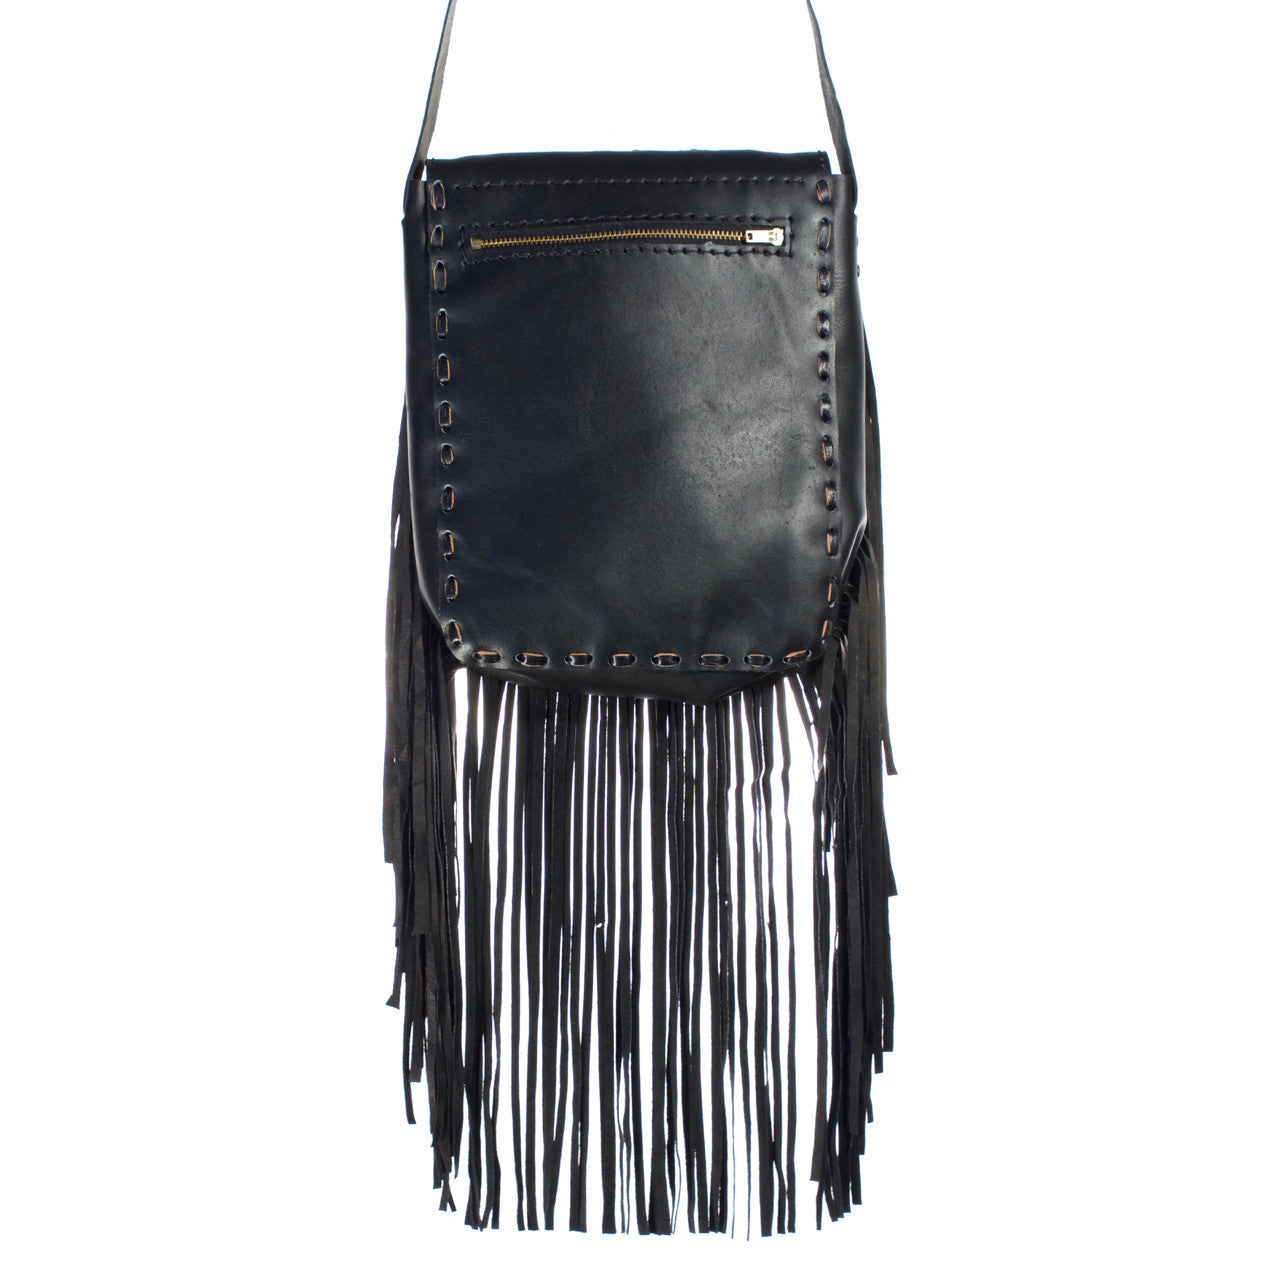 Chi Chi Fringe Bag - Black  Shoulder Bag Multi Zigzag - Cielo Collective handmade Mexico Guatemala